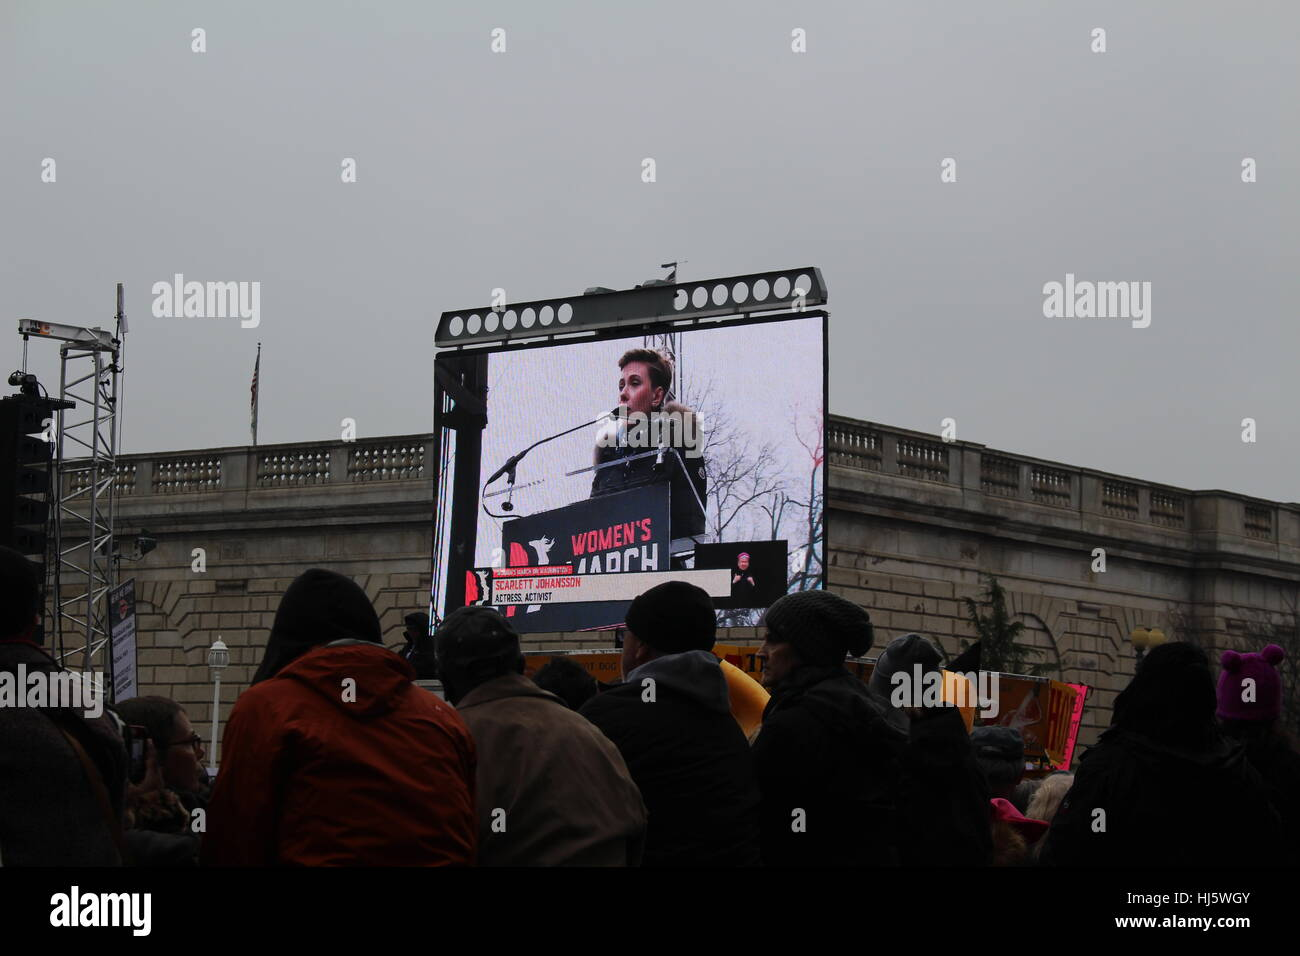 District of Columbia, USA. 21 Jan, 2017. Protesters watch actress and activist Scarlett Johansson on the livestream. - Stock Image